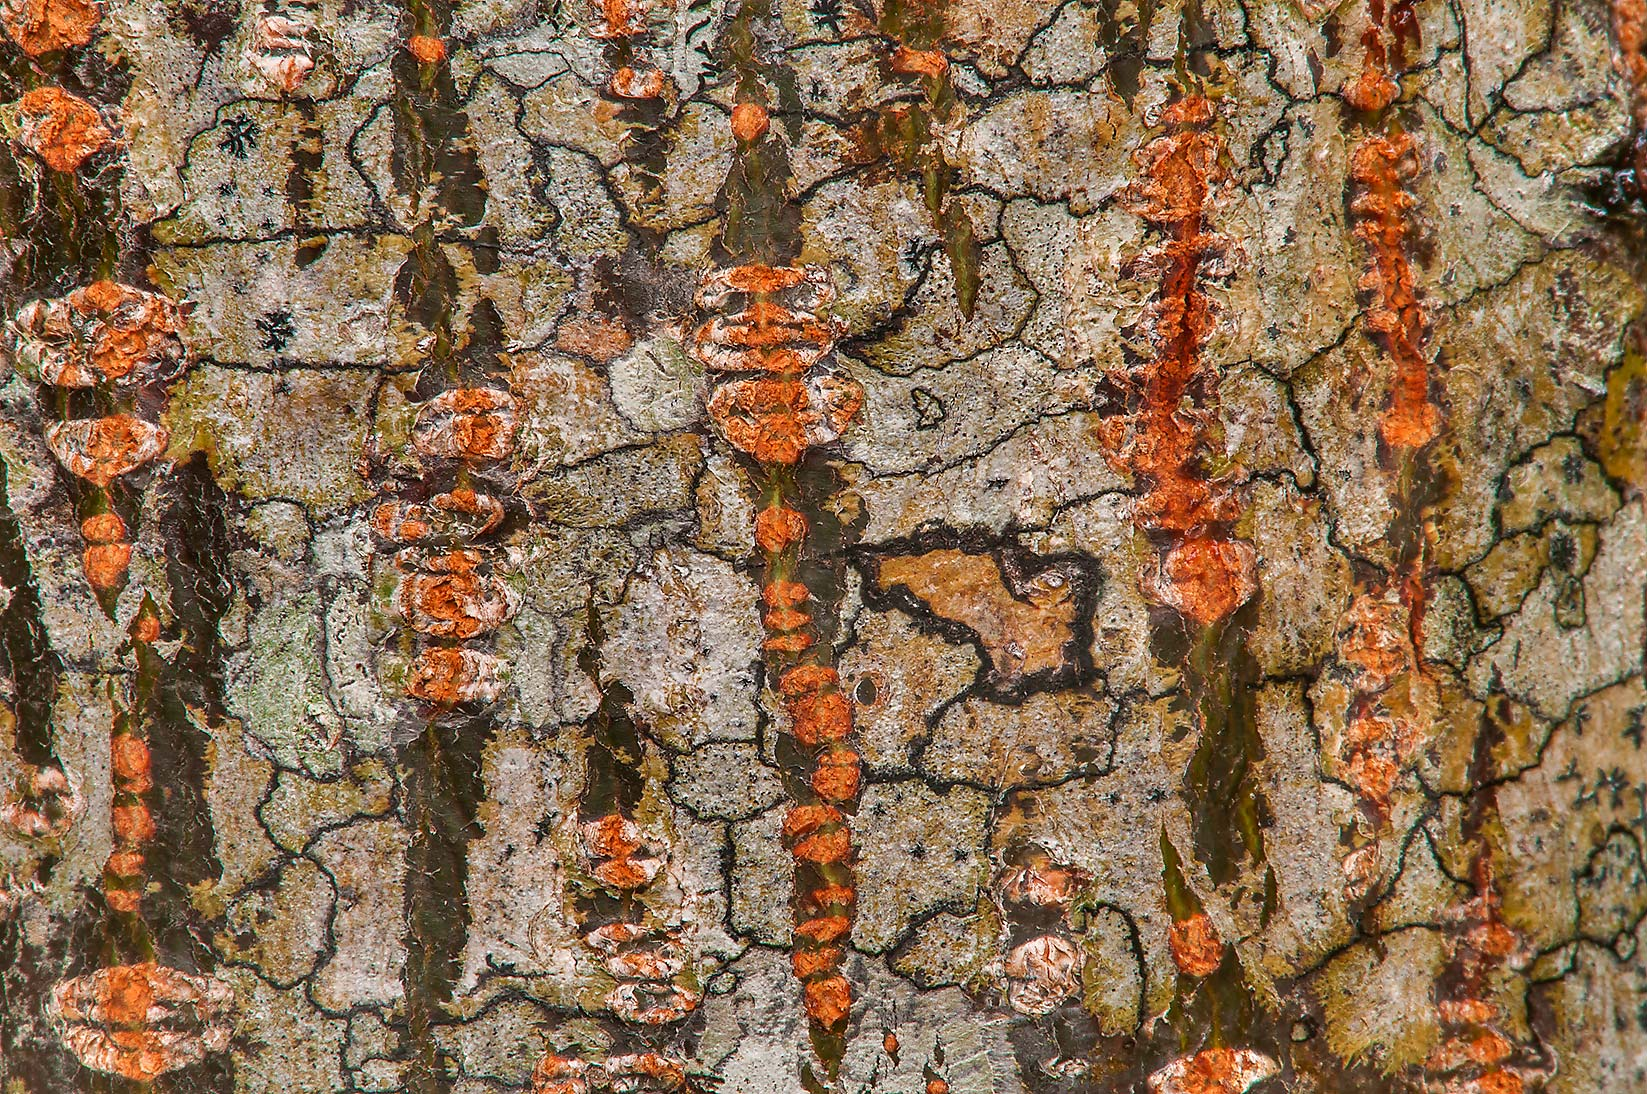 Chinaberry tree bark on Racoon Run Trail in Lick Creek Park. College Station, Texas